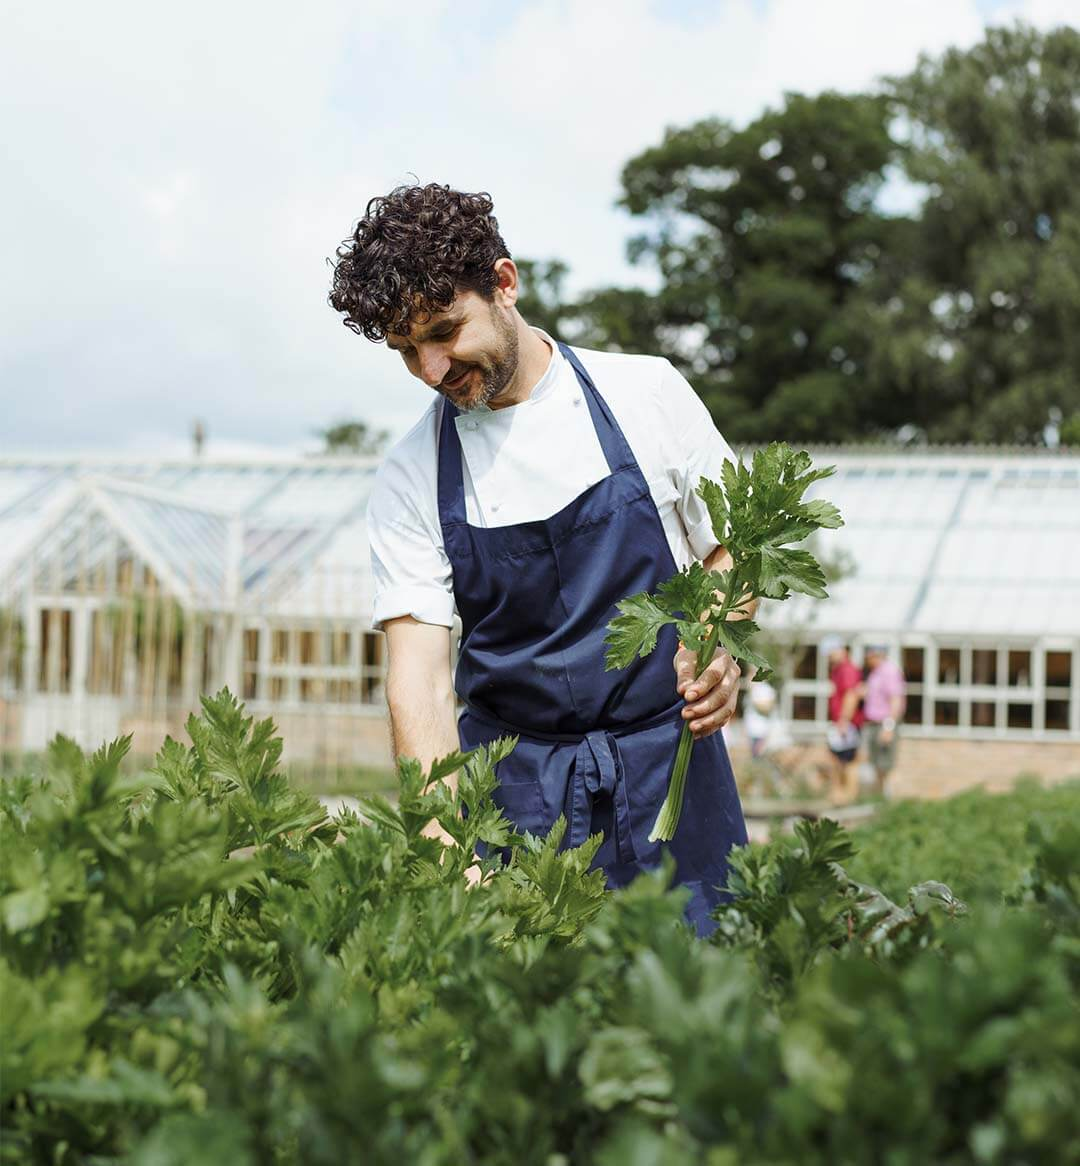 Explore exciting career opportunities from across our estate including marketing, kitchen, gardening and many more. Here at Wynyard Hall we are more than just a place to work, we are a community.